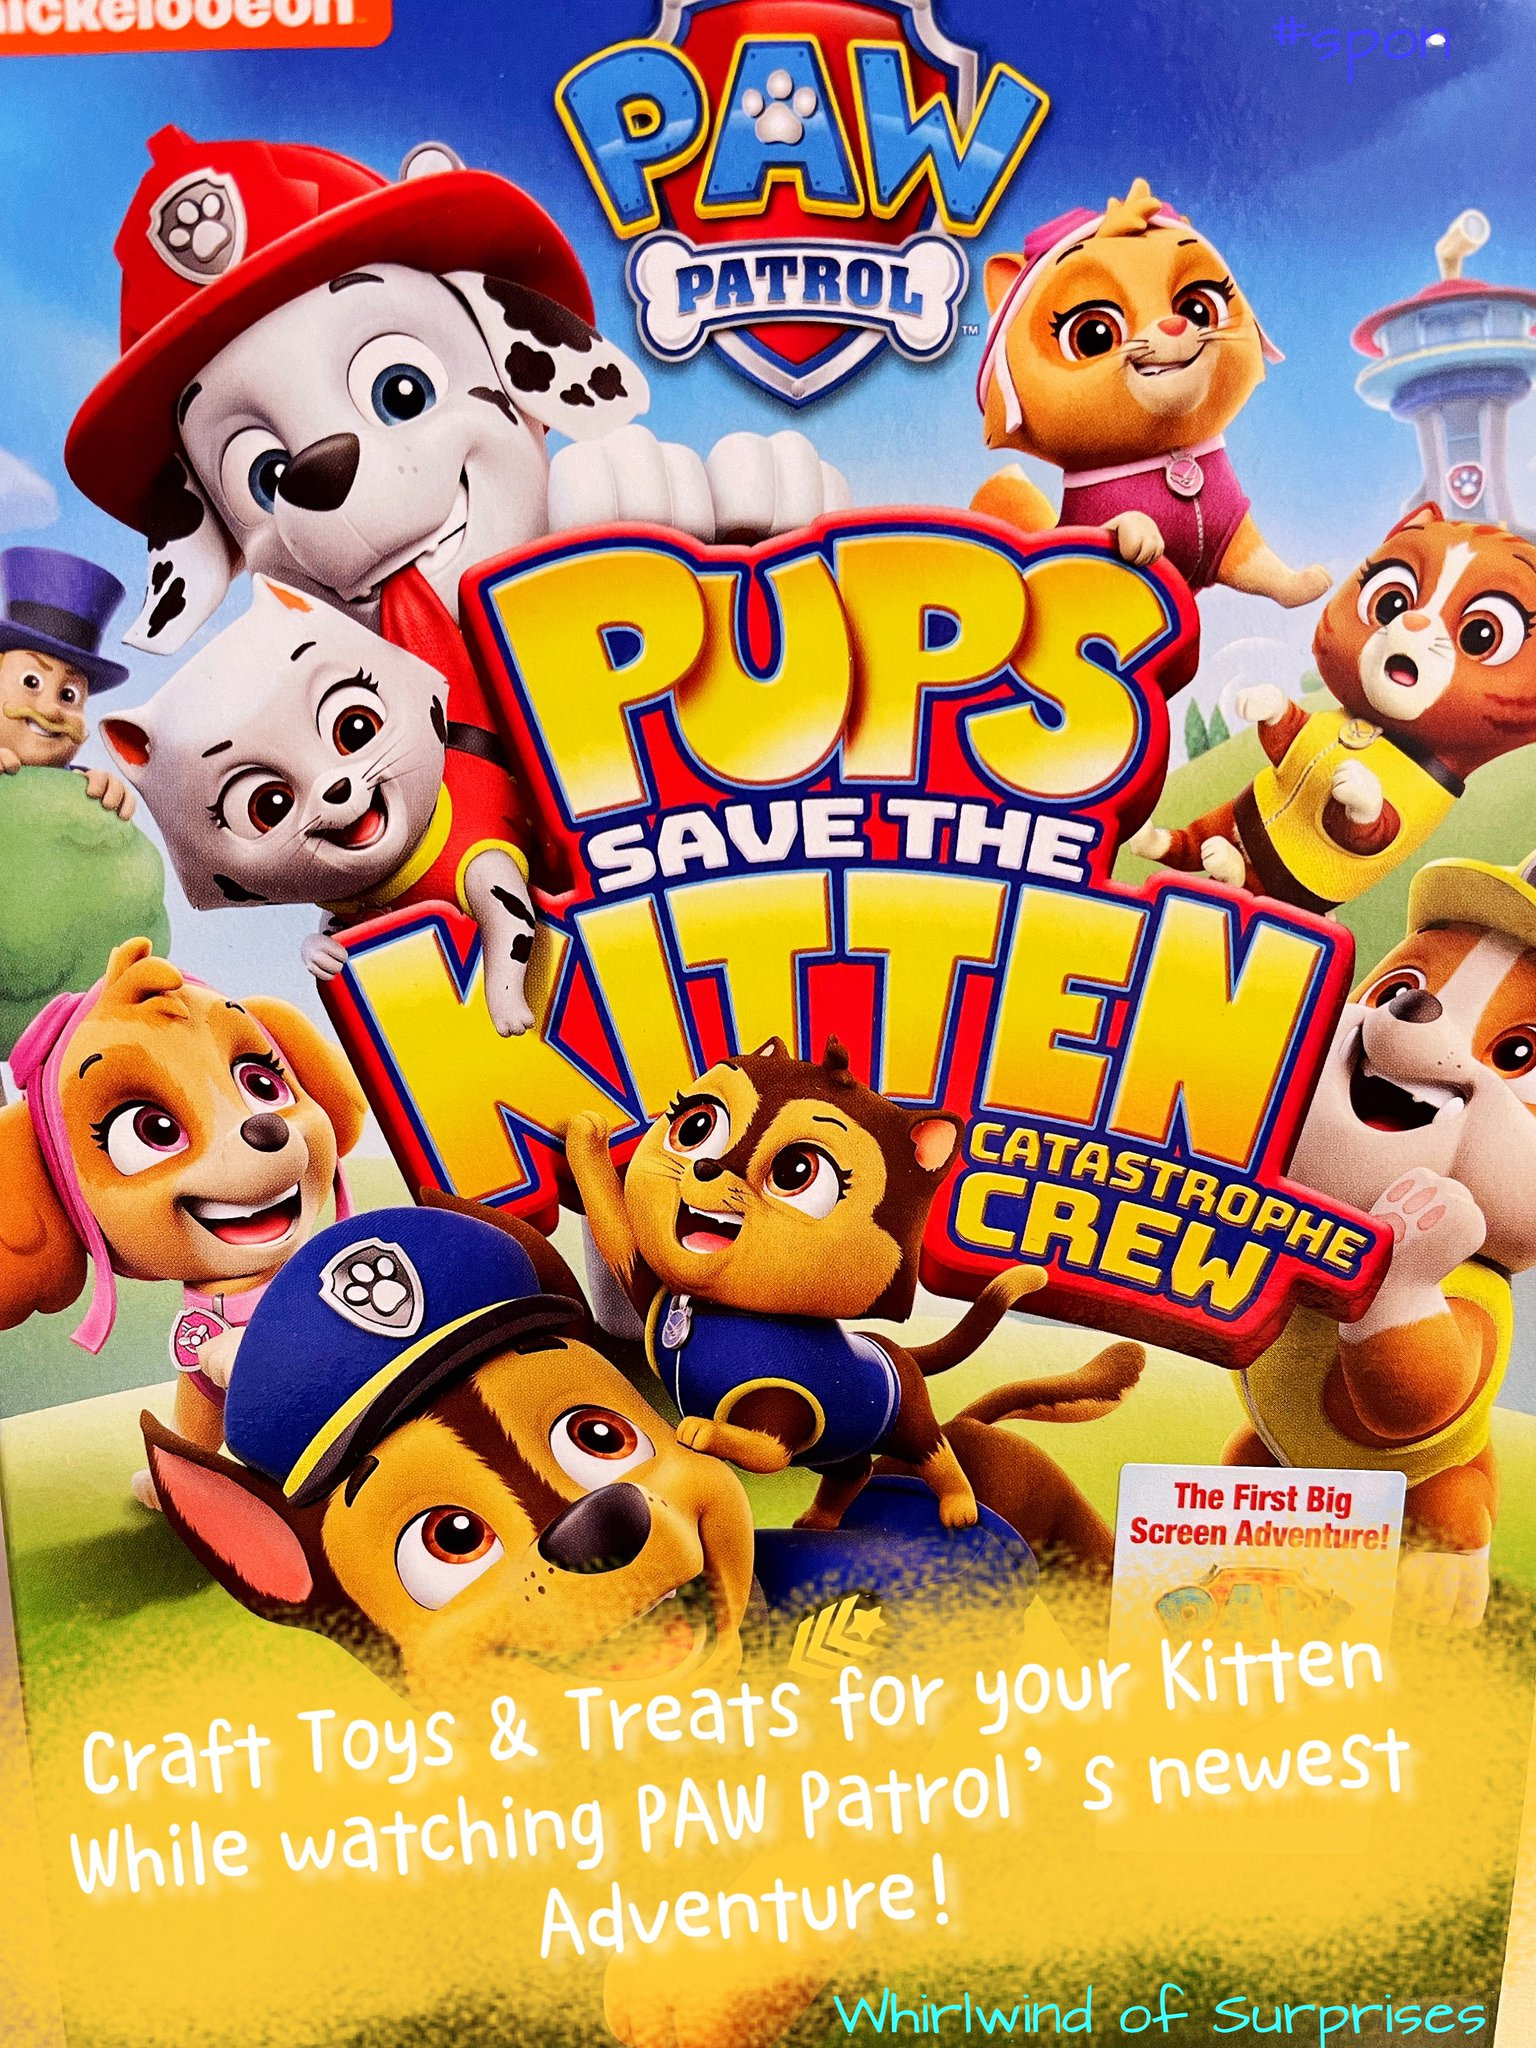 PAW Patrol: Pups Save the Kitten Catastrophe Crew Review